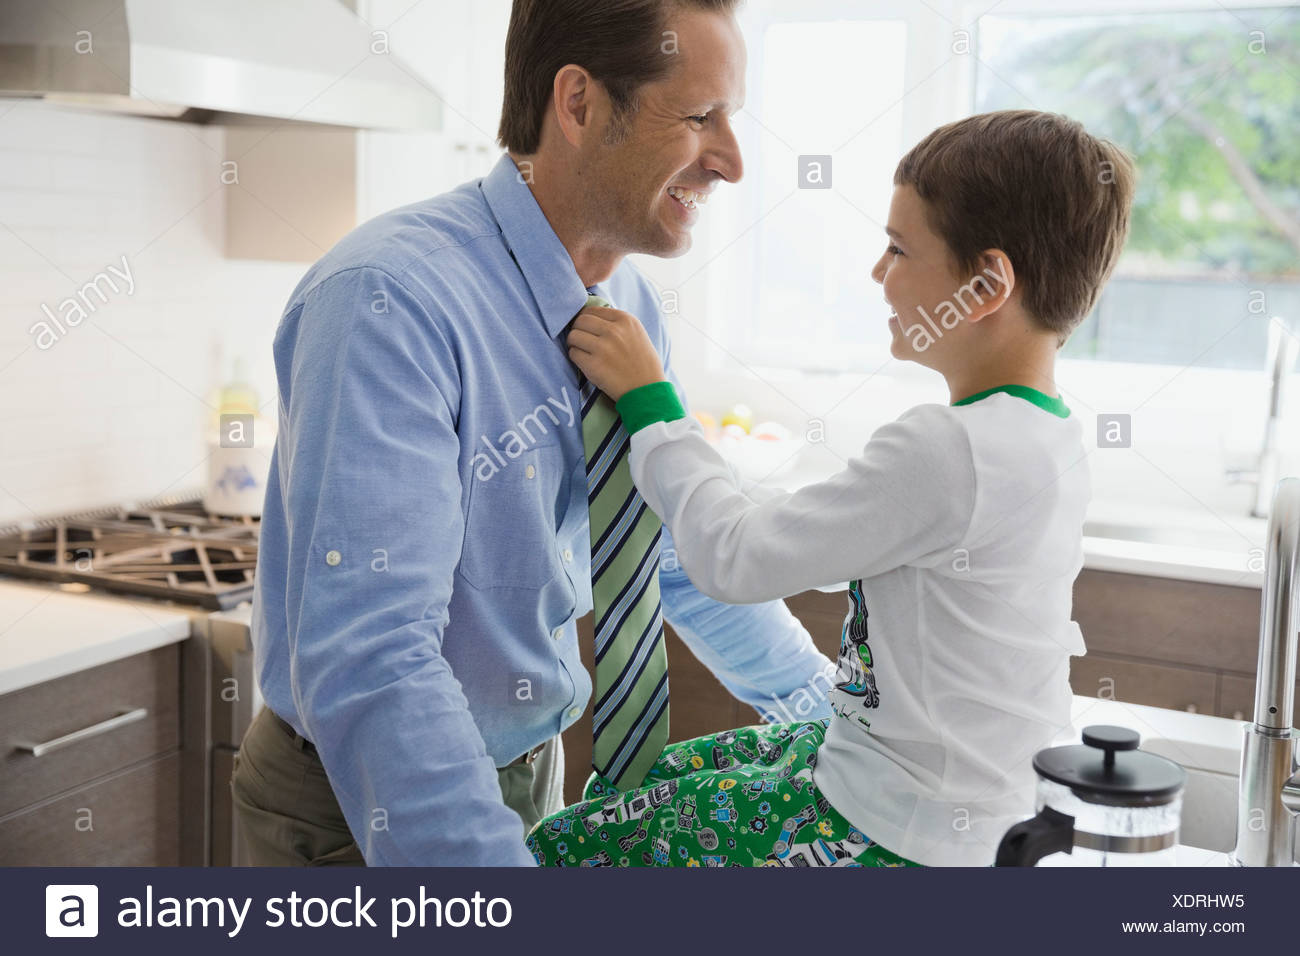 Son adjusting fathers necktie in kitchen - Stock Image